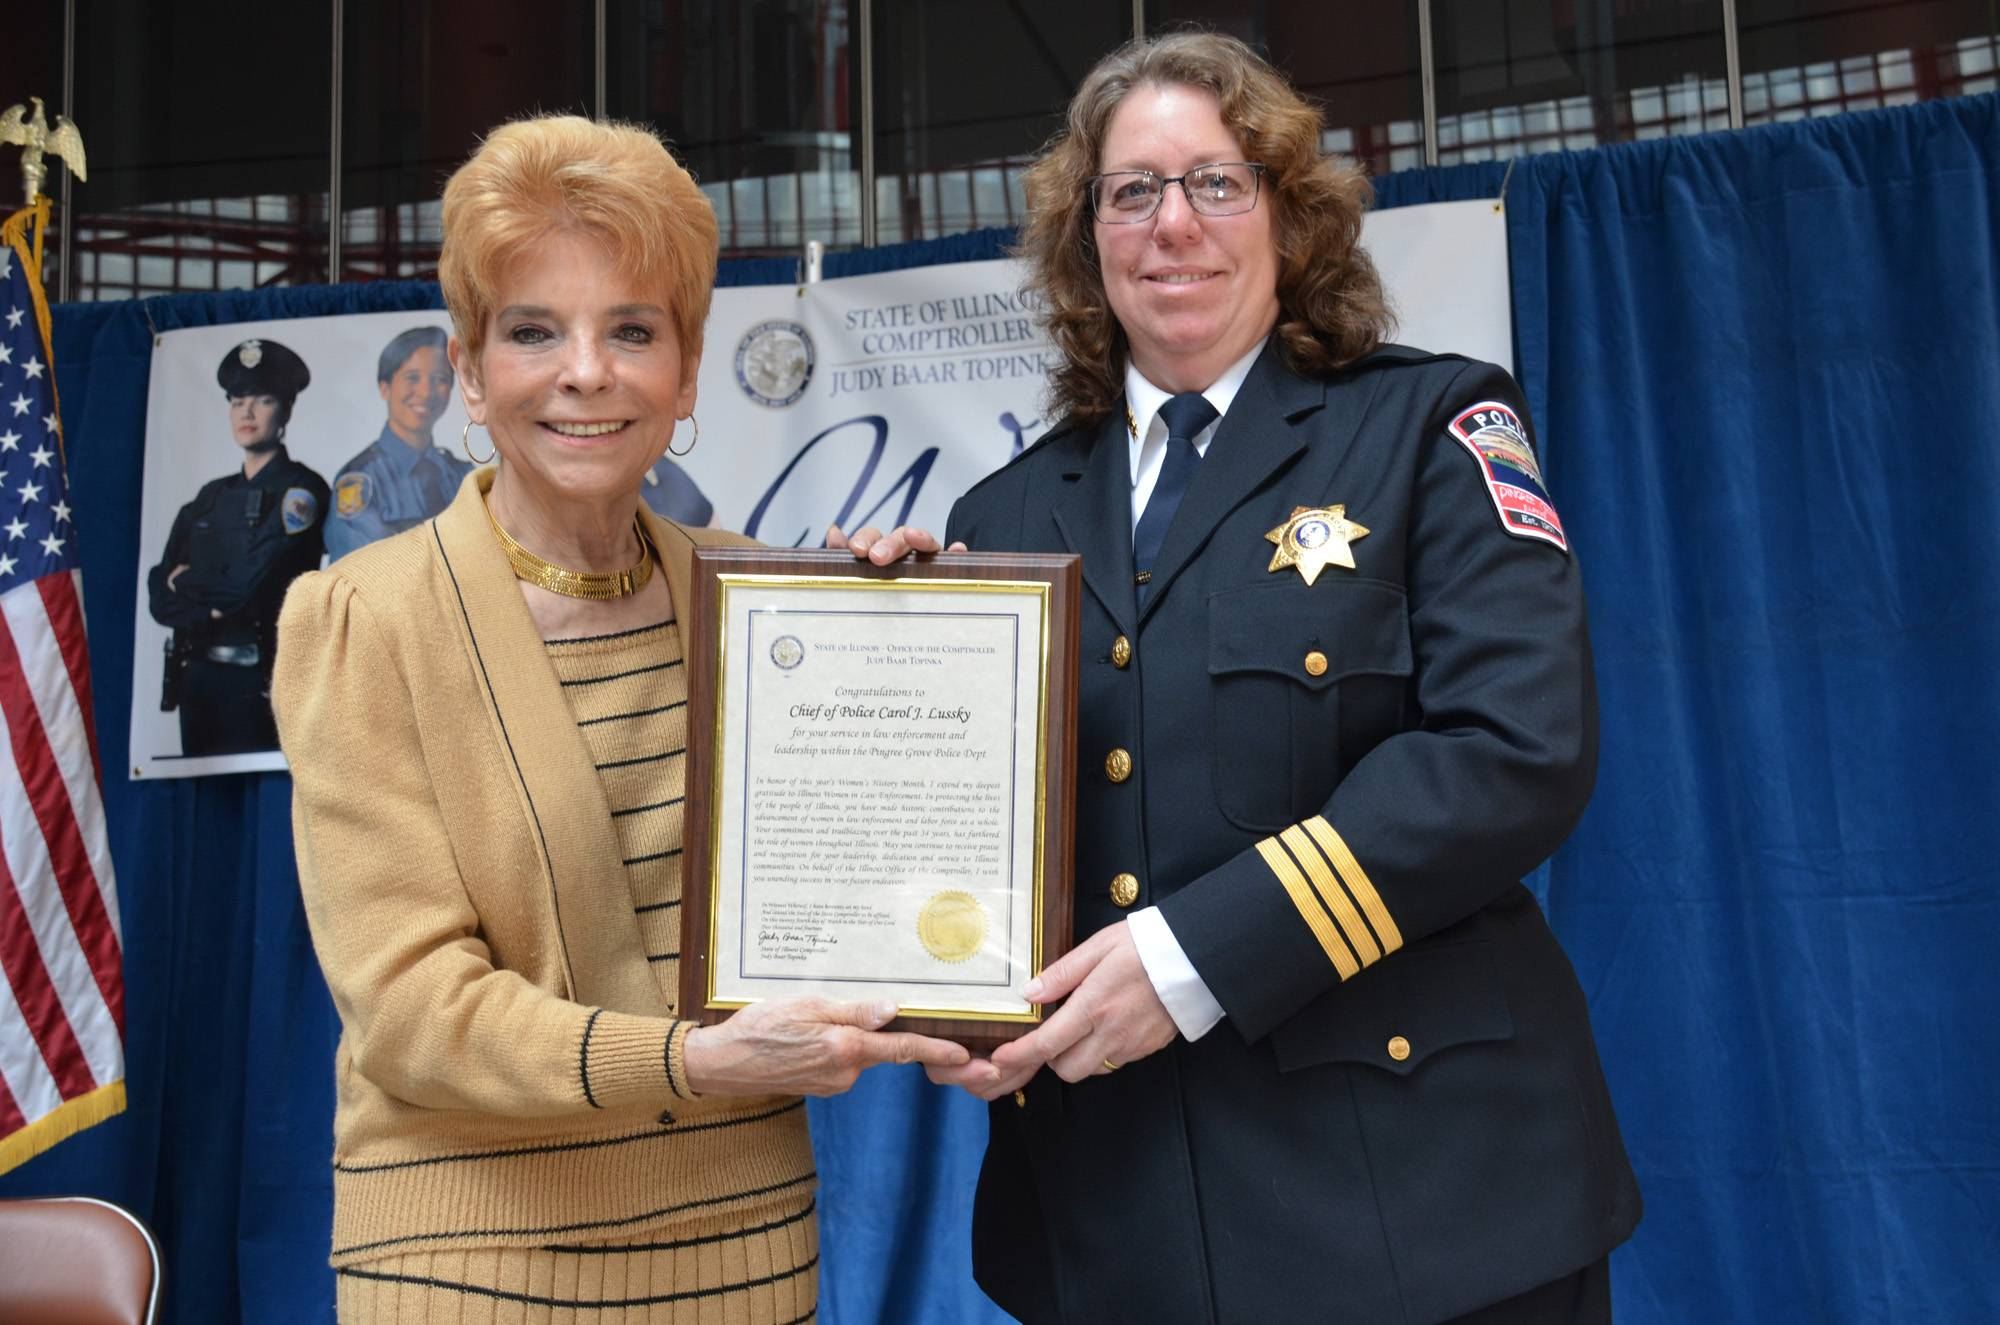 Illinois Comptroller Judy Baar Topinka, left, honored female law enforcement leaders, including Pingree Grove Police Chief Carol Lussky as part of Women's History Month.